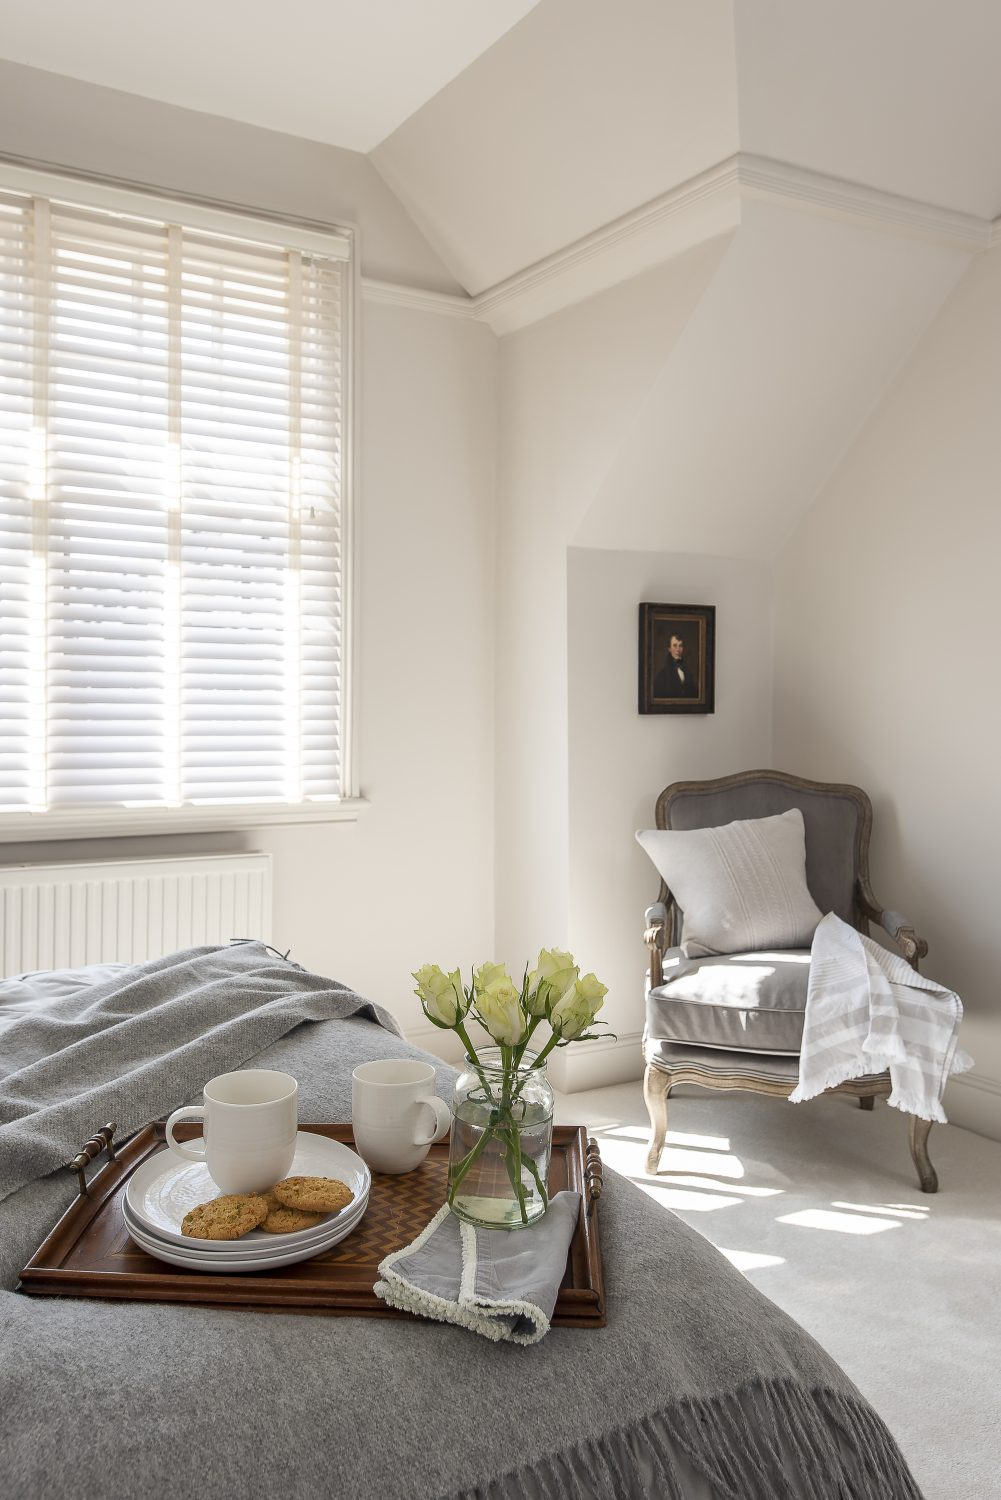 Slate grey bedside lamps from Mark Maynard complement the chair in this relaxing guest bedroom